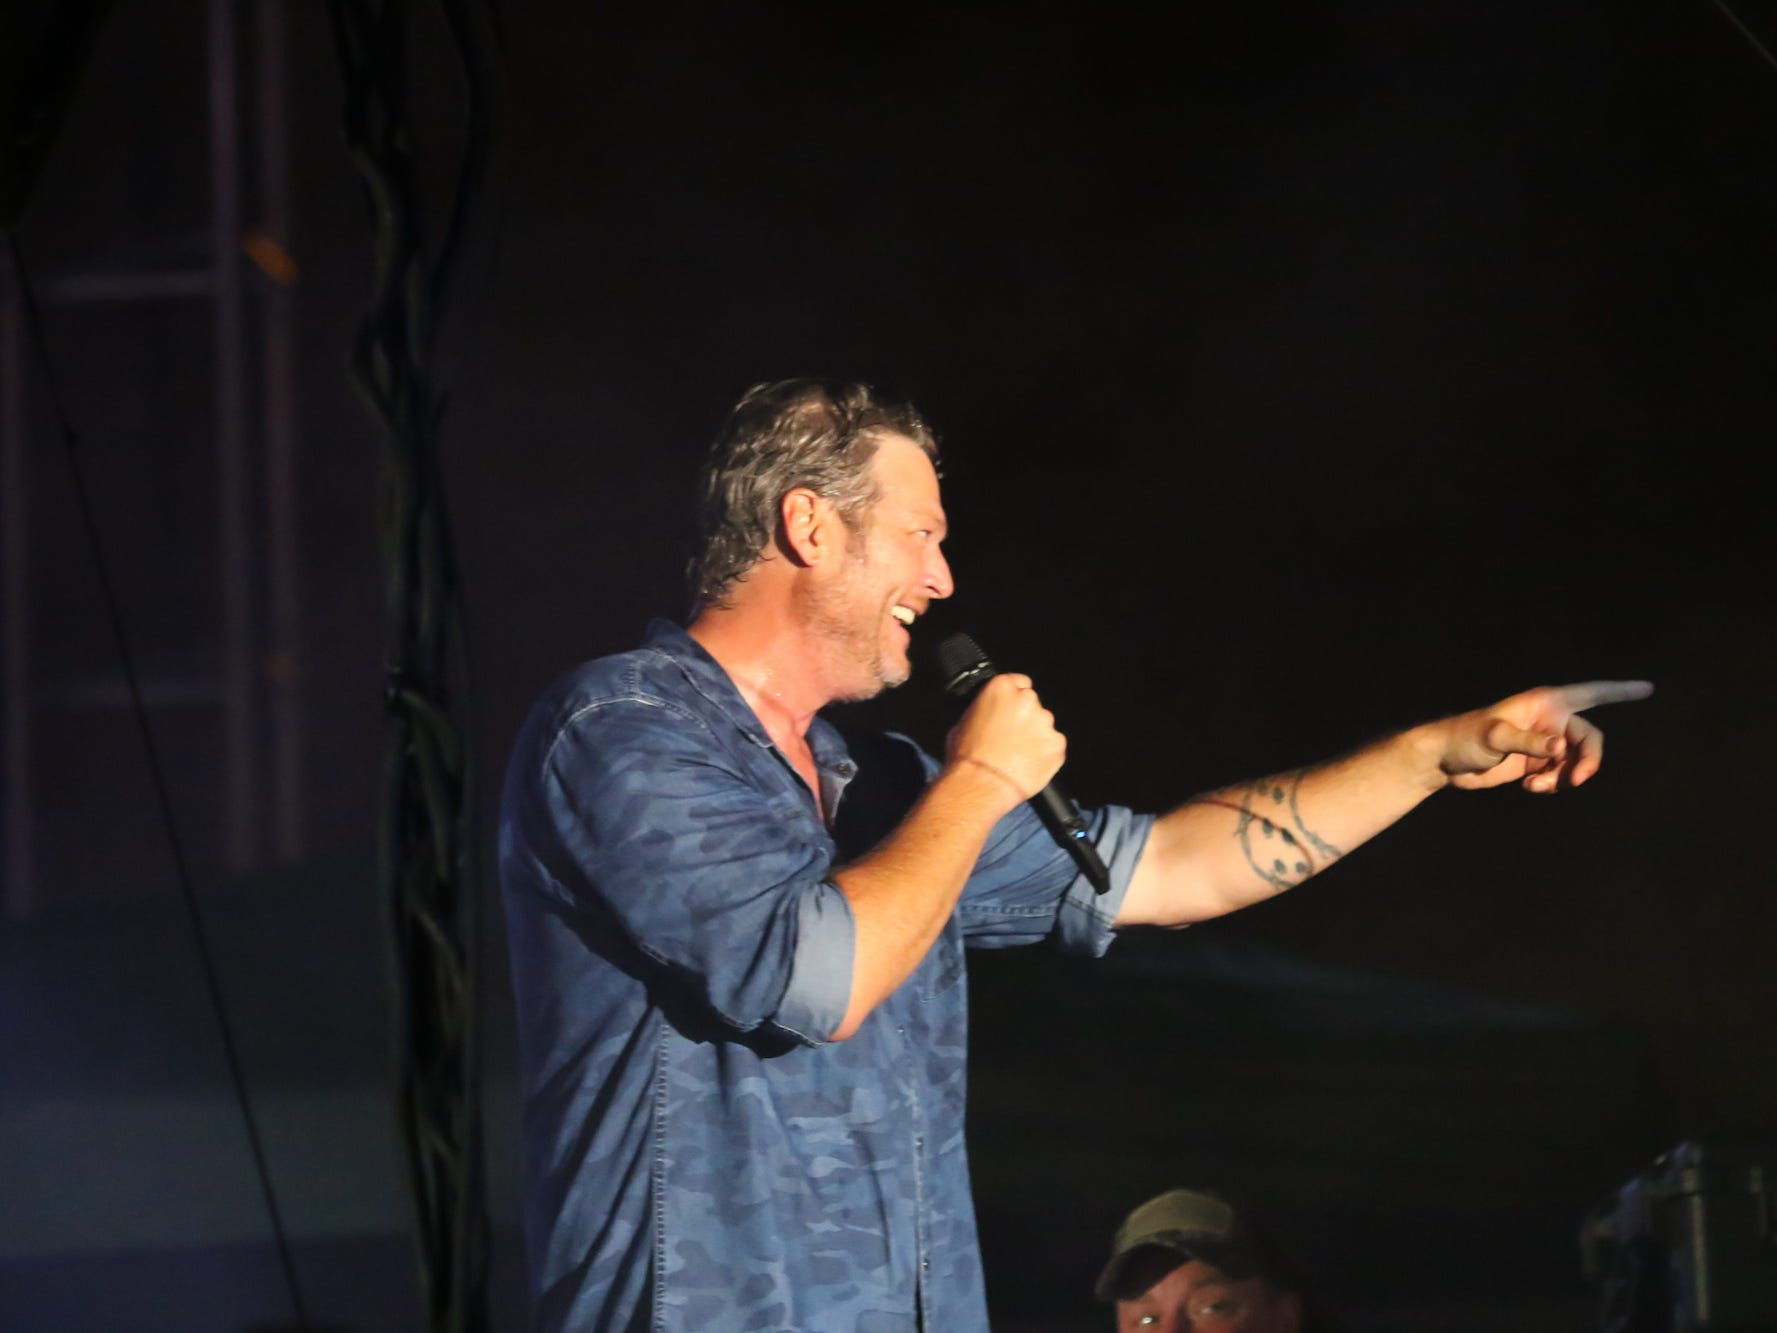 Fans turned out for the Blake Shelton concert at the Dick's Sporting Goods Open on Friday, Aug. 17, 2018.